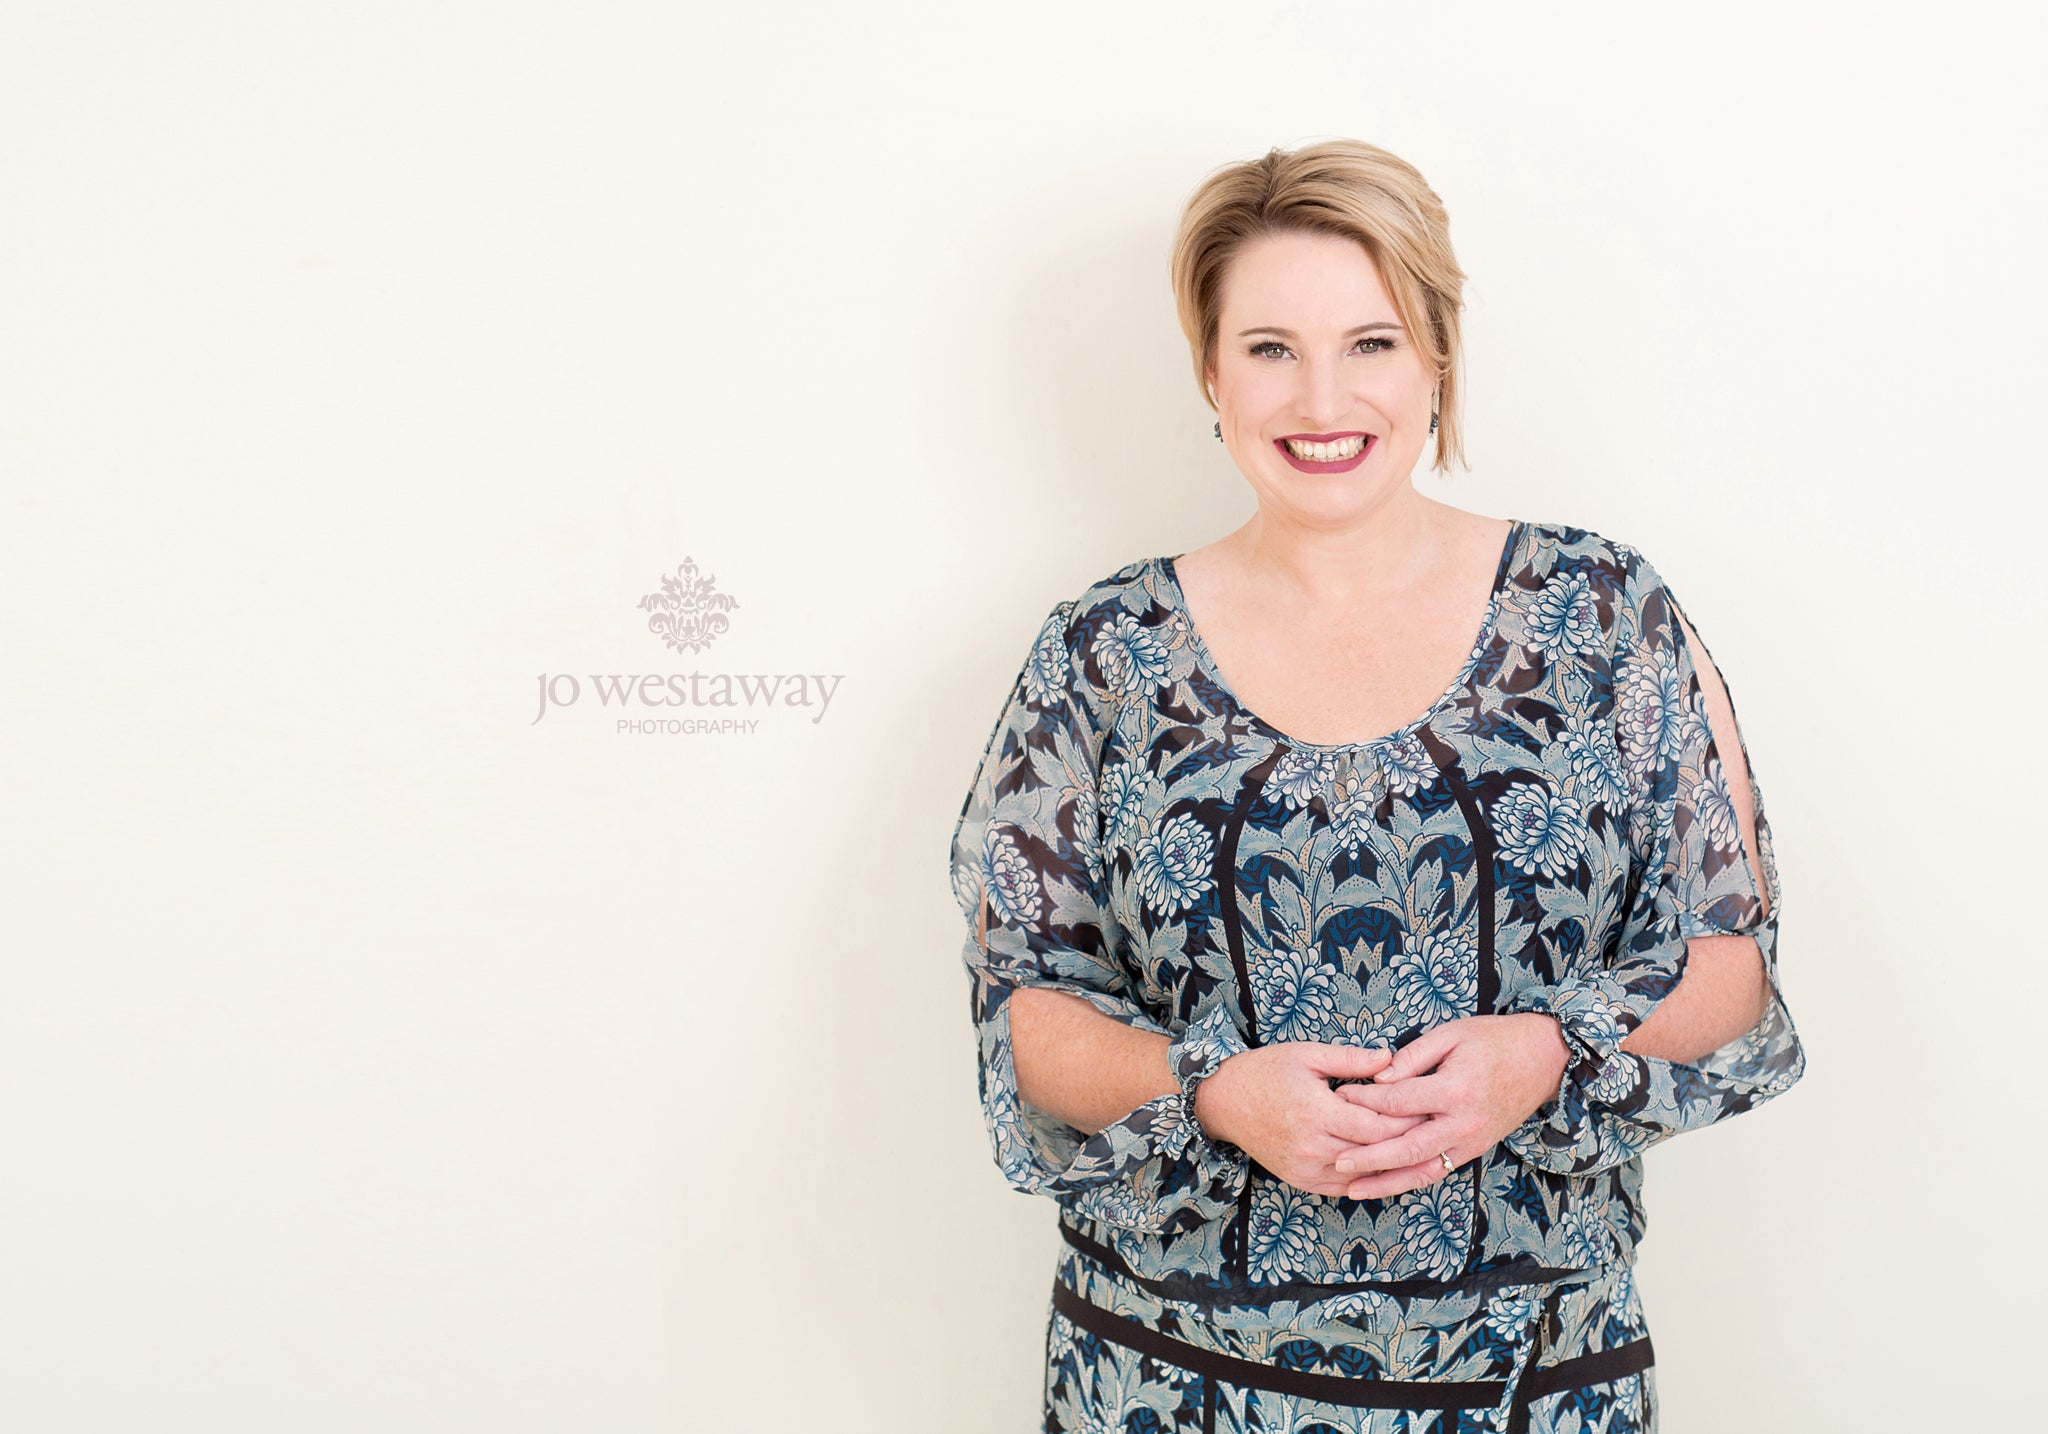 Look confident and professional with modern head shots and personal brand portraits for female business owners, coaches and entrepreneurs